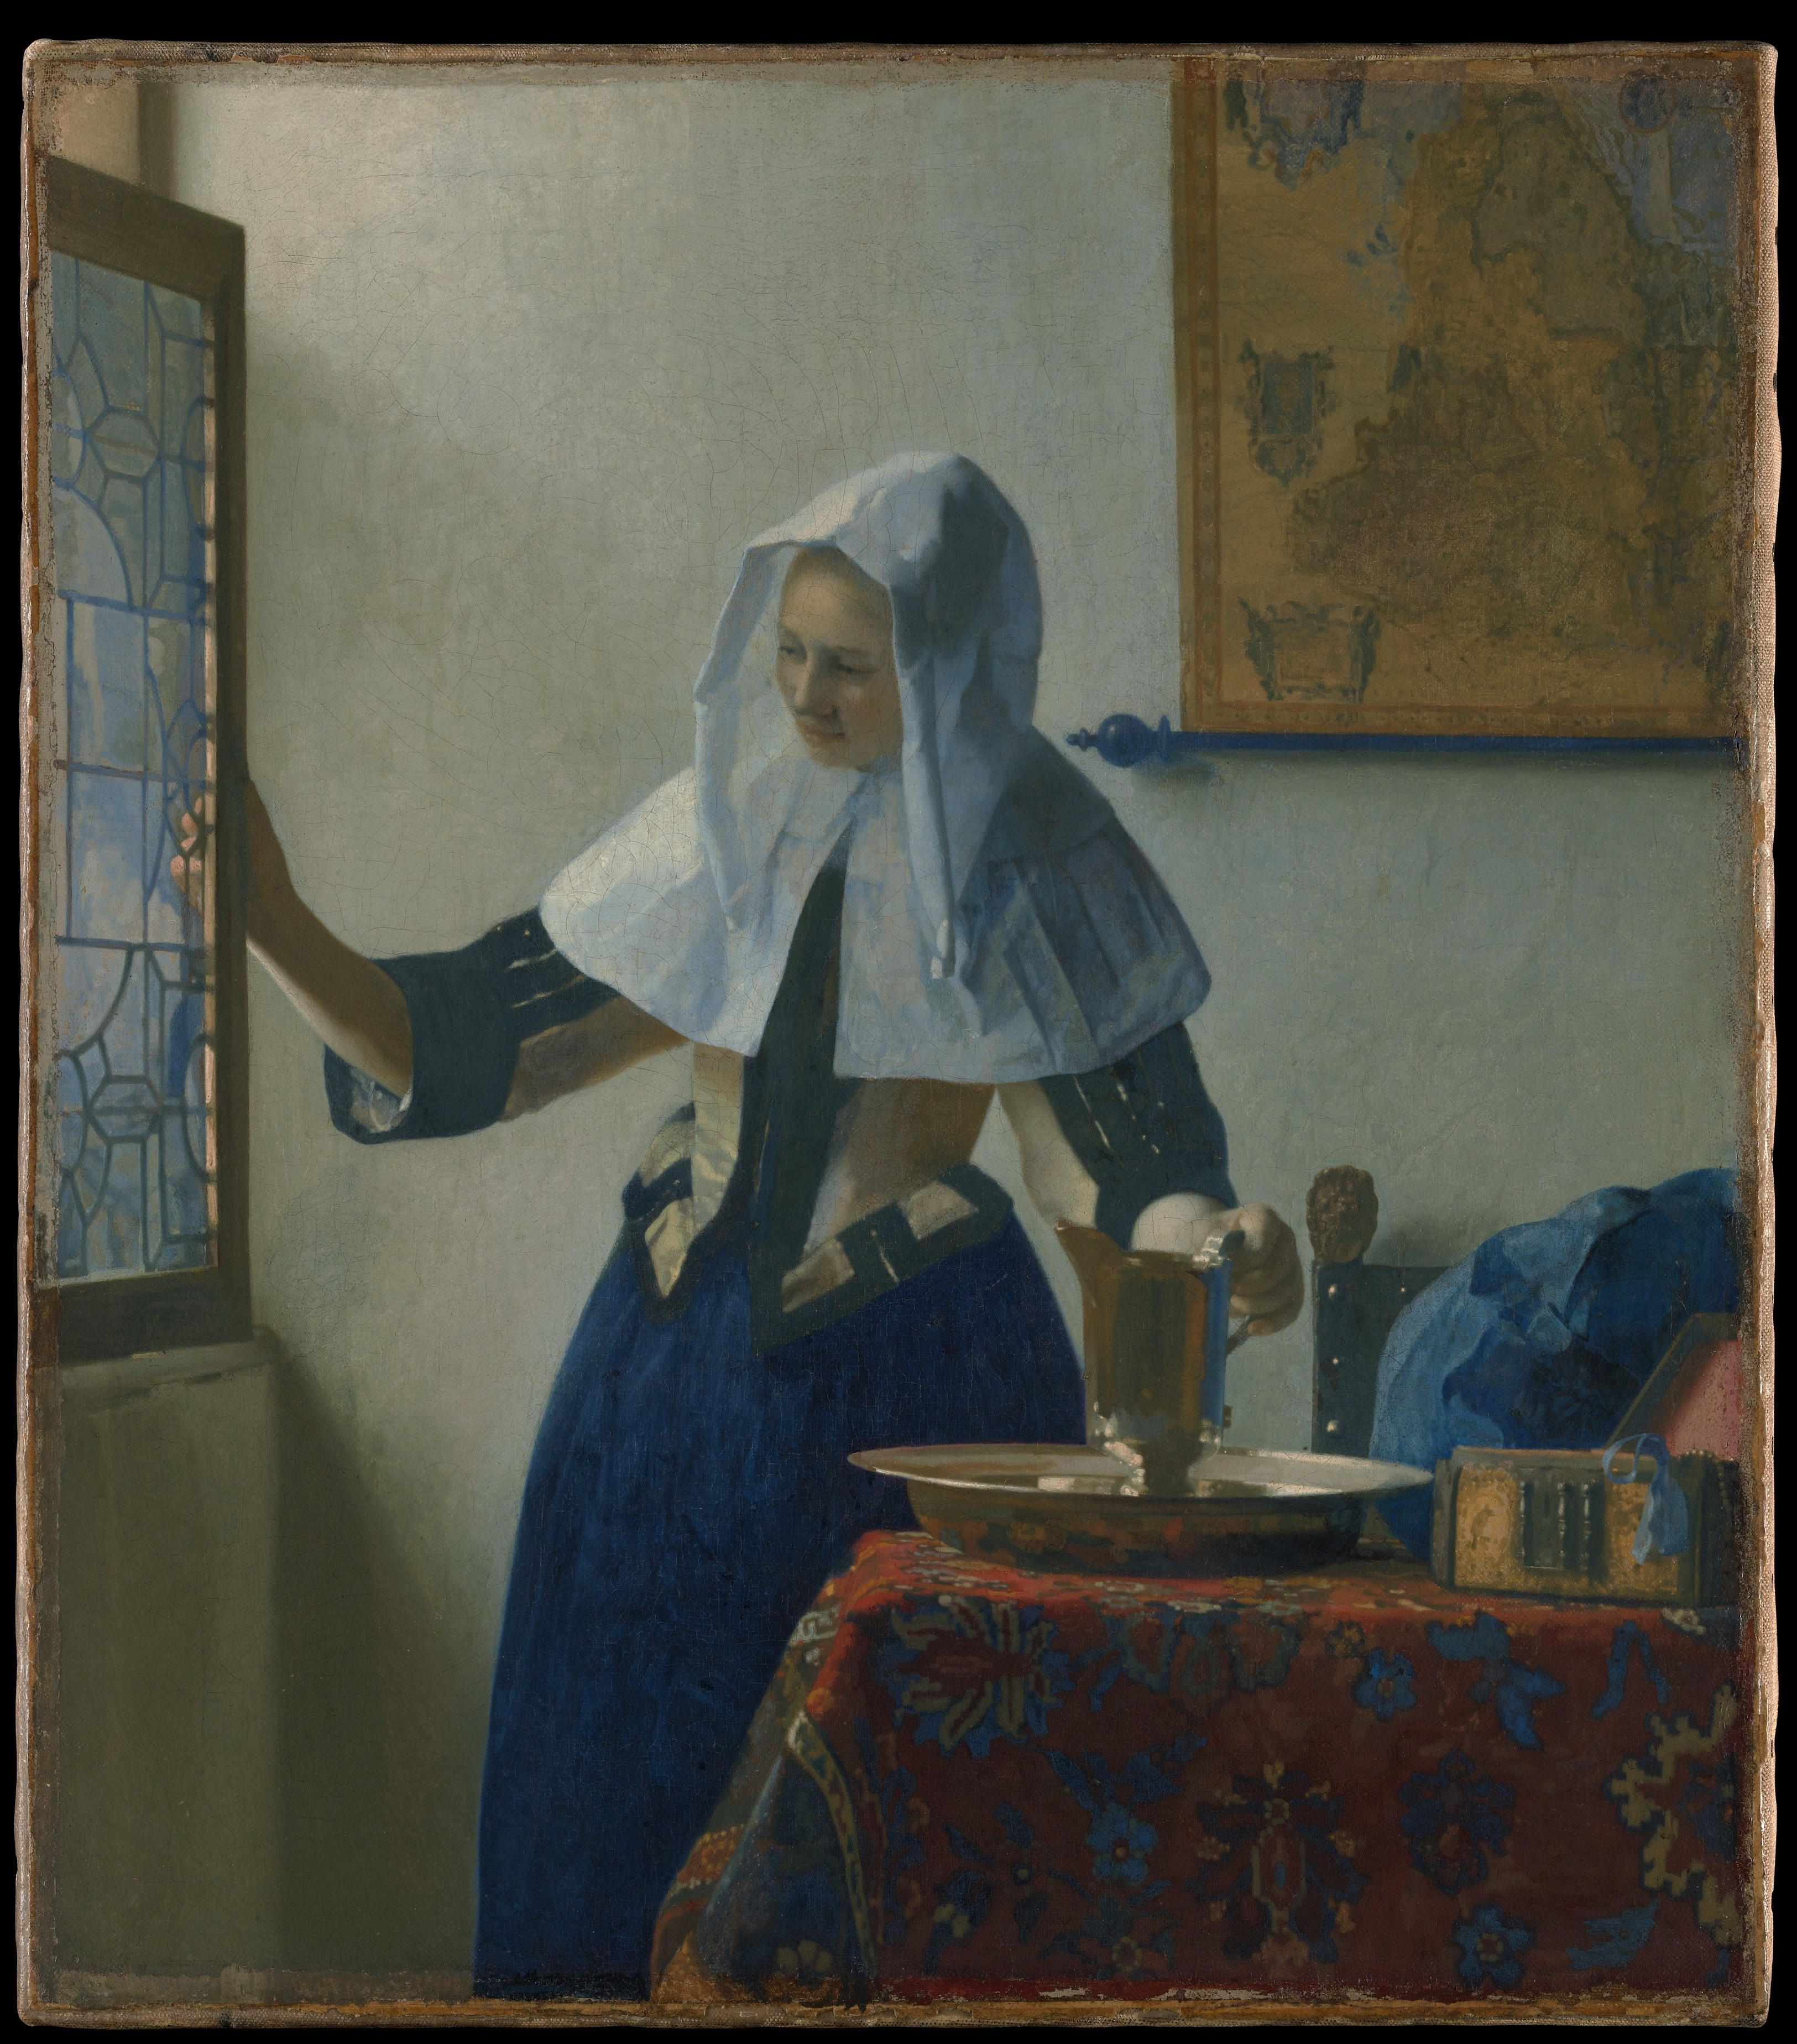 Johannes Vermmer used light beautifully in this painting of young woman with a pitcher.